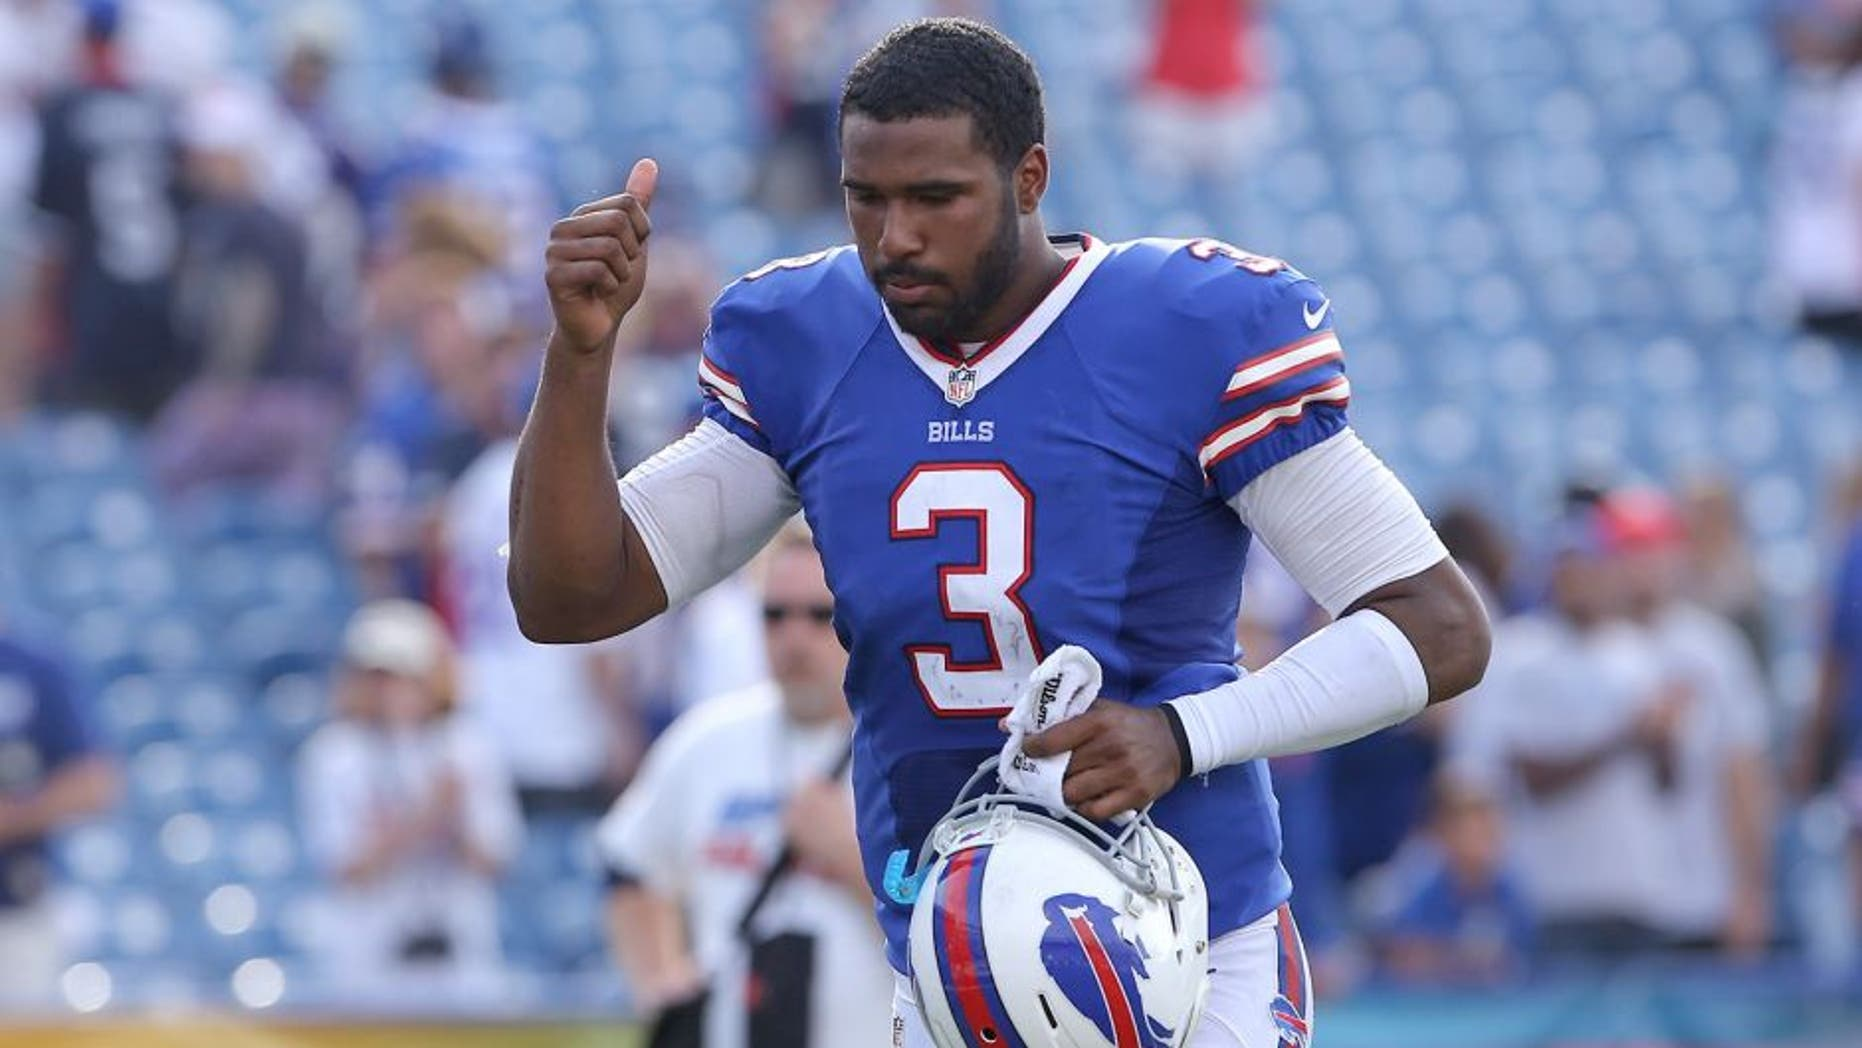 ORCHARD PARK, NY - SEPTEMBER 29: E.J. Manuel #3 of the Buffalo Bills celebrates their victory at the conclusion of their NFL game against the Baltimore Orioles at Ralph Wilson Stadium on September 29, 2013 in Orchard Park, New York. (Photo by Tom Szczerbowski/Getty Images)